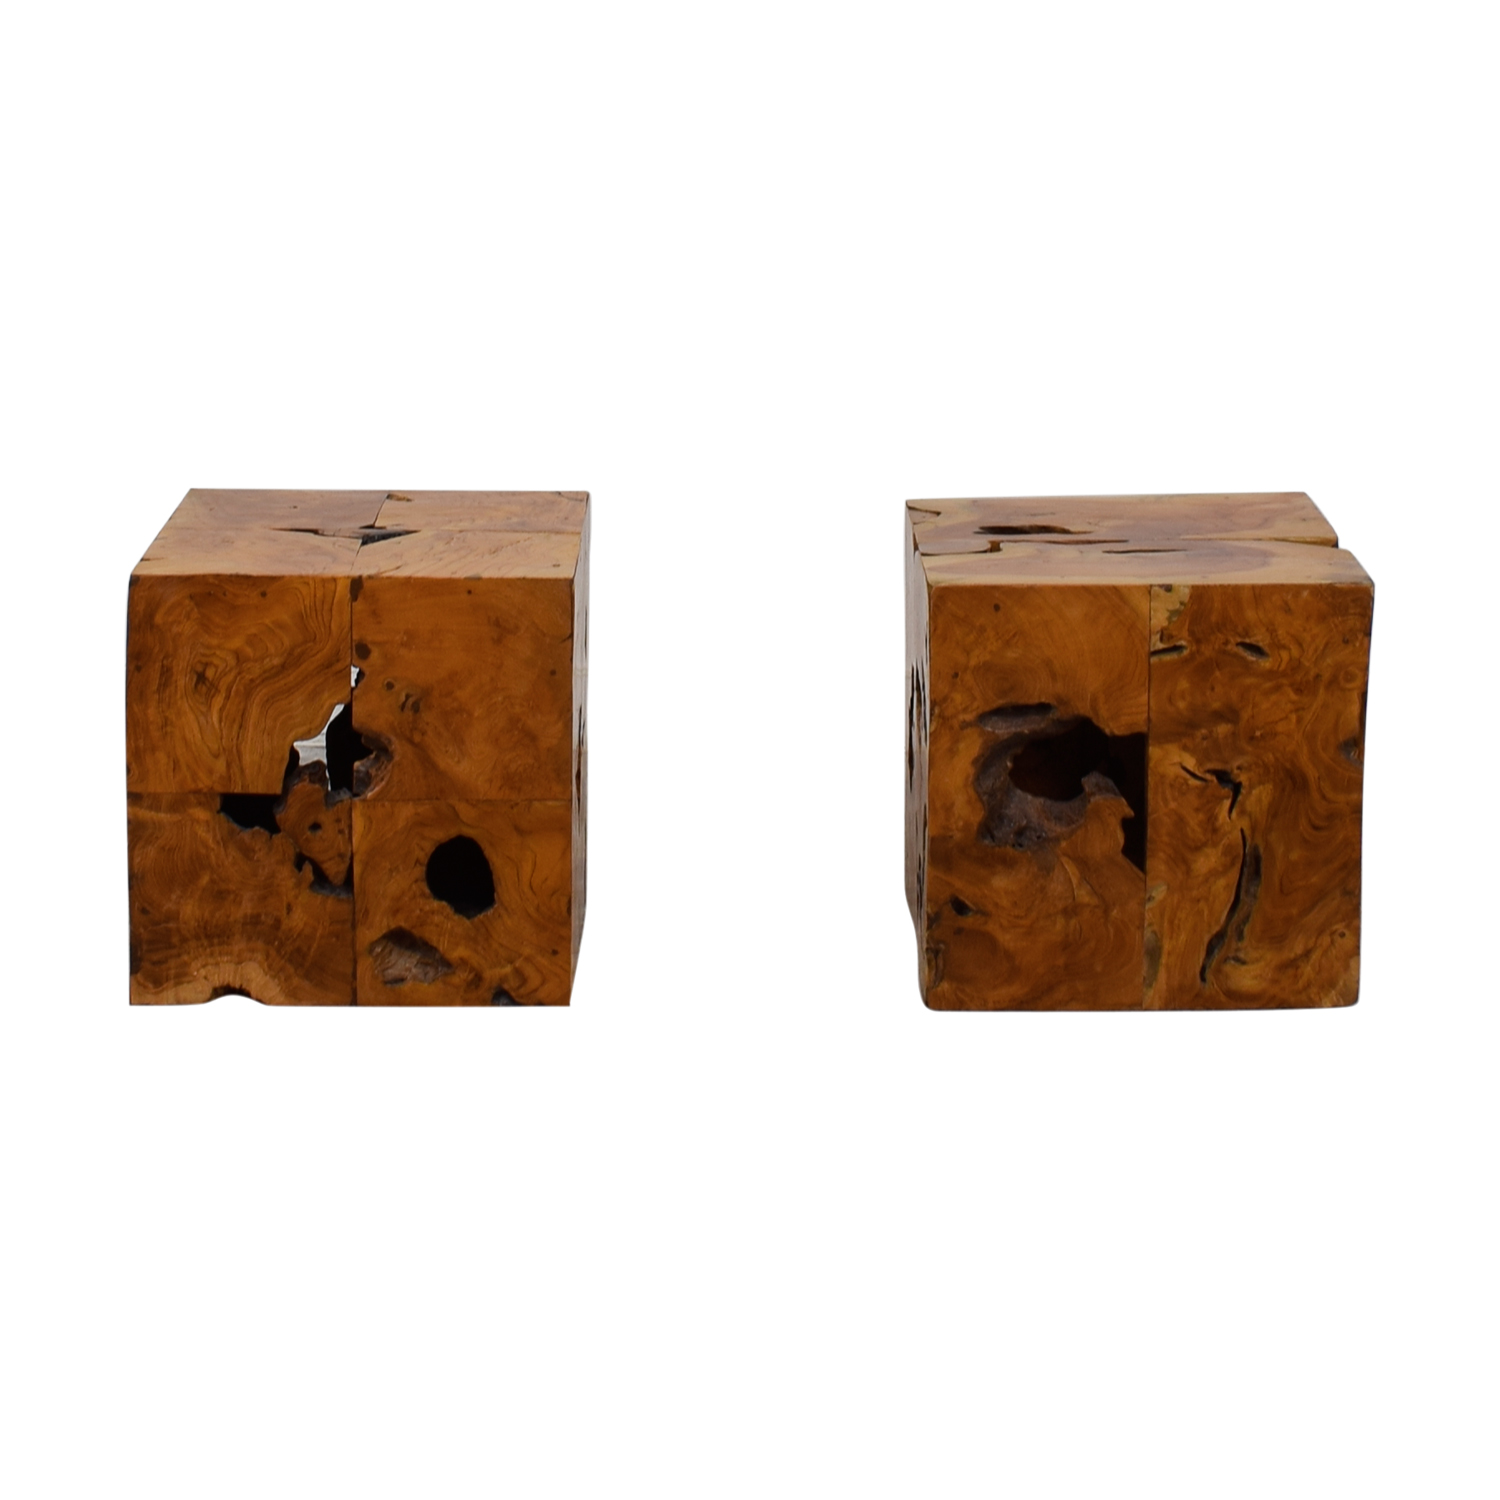 Natural Rustic Wood End Tables Tables